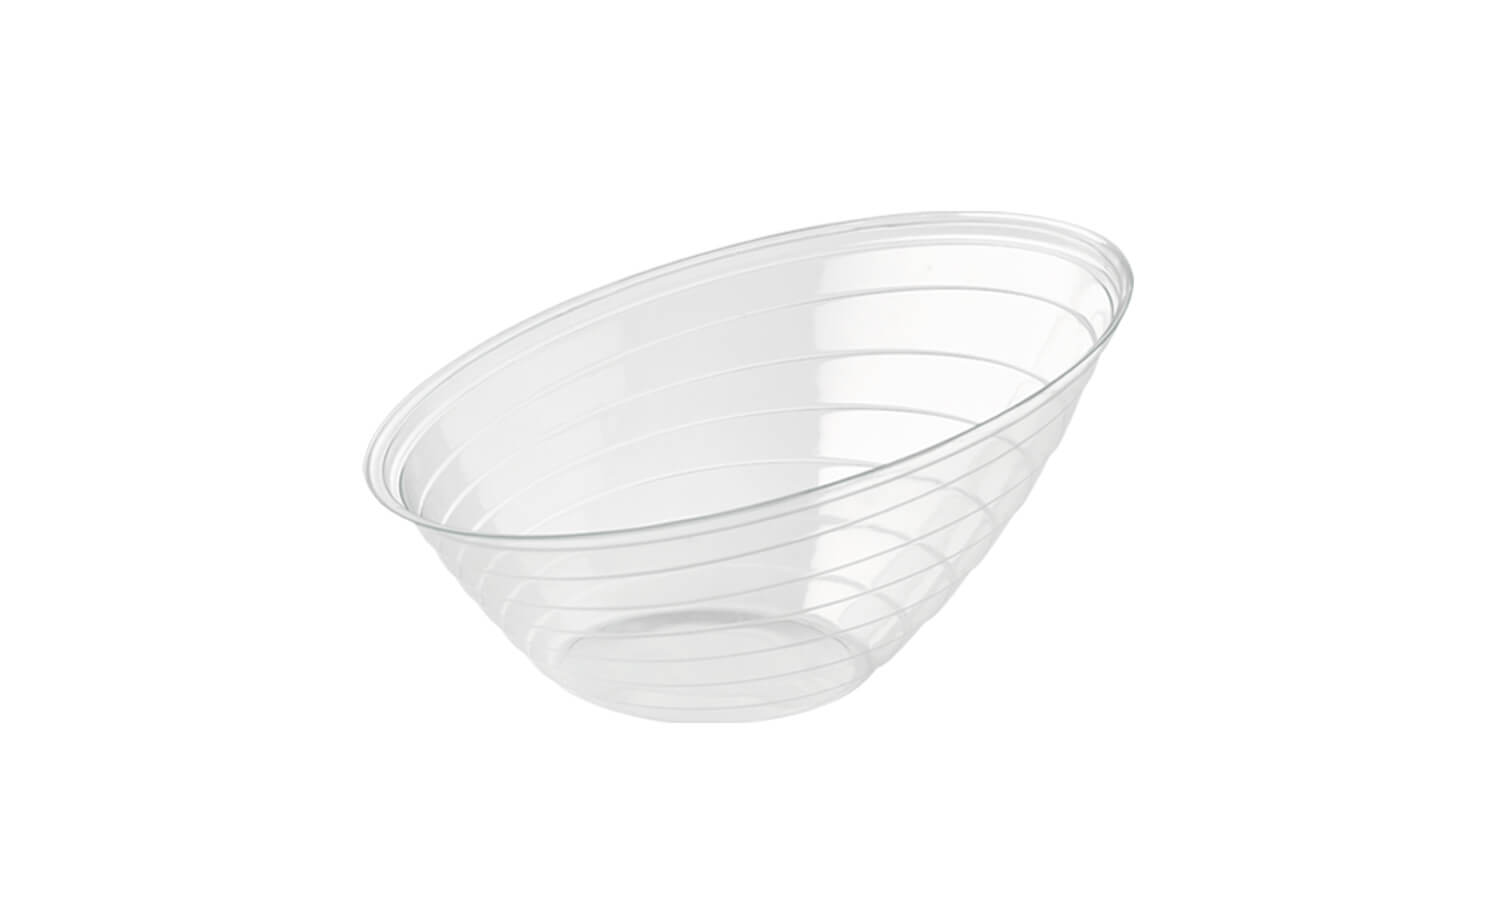 Bowl M (6 2/7 x 3 1/2 in)